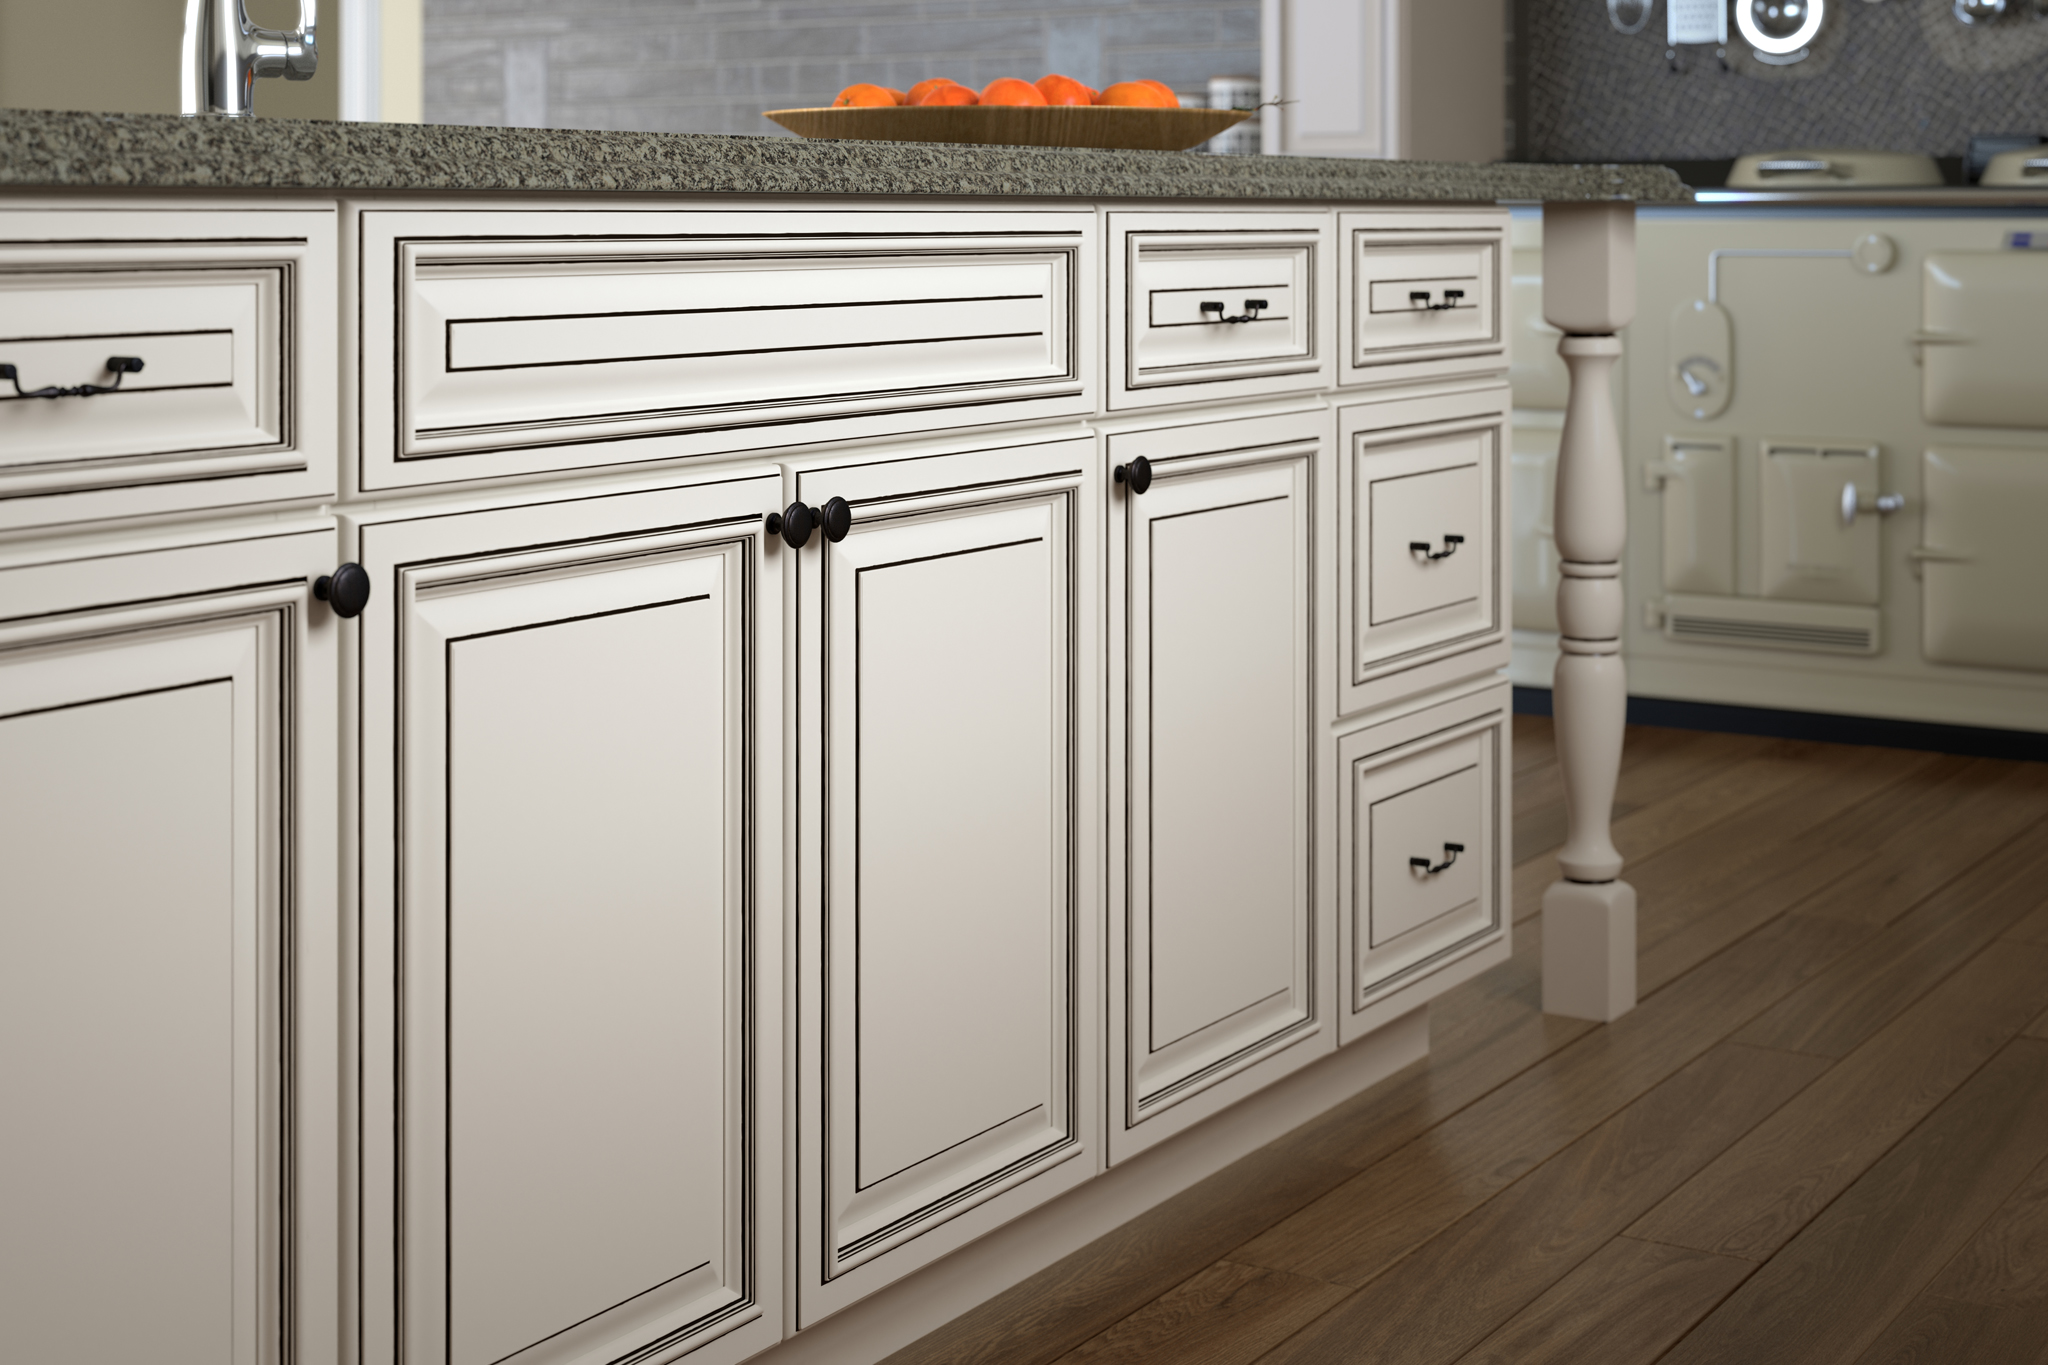 3d rendering of white kitchen cabinets